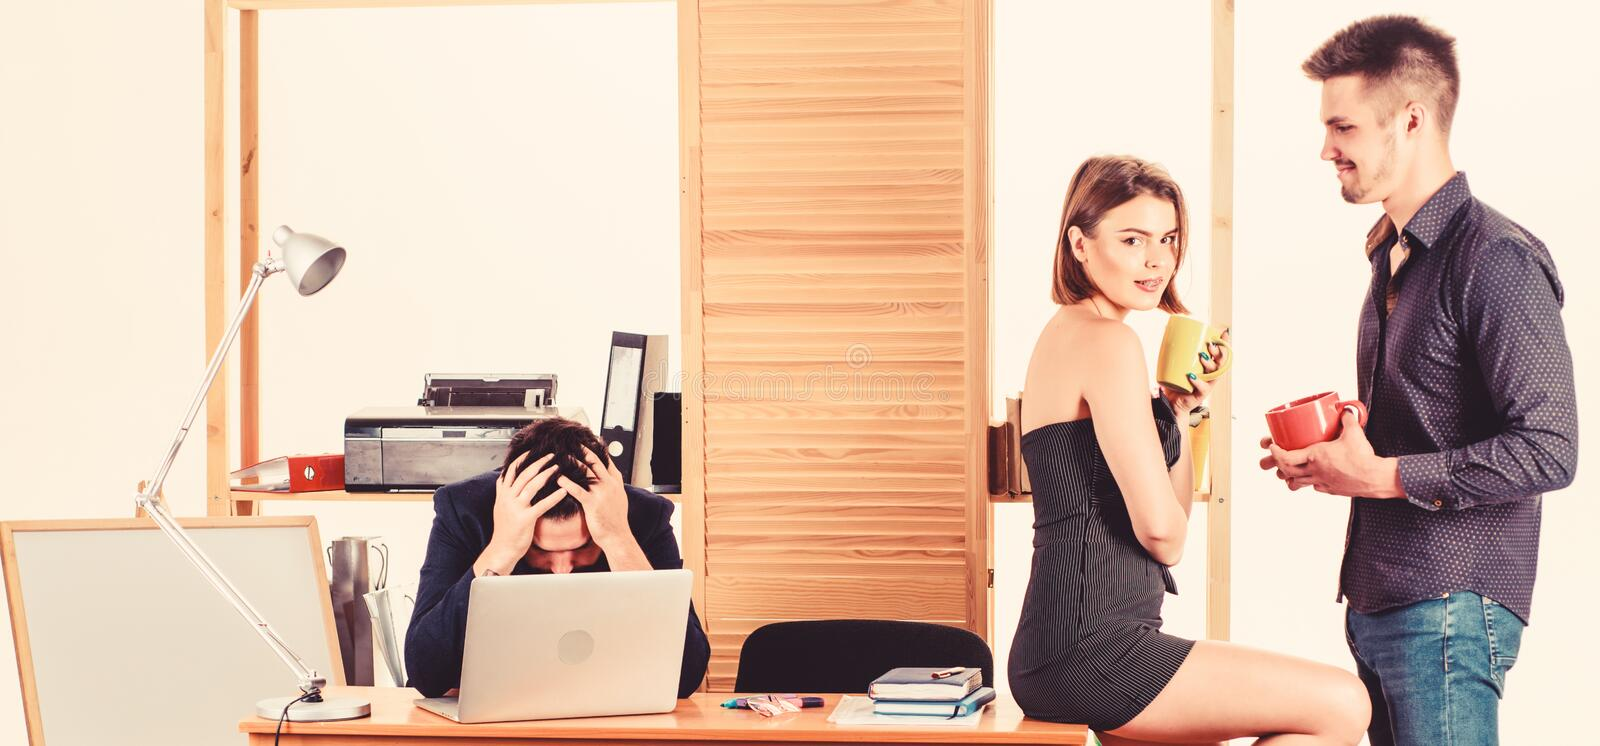 Flirting with coworker coffee break. Woman flirting with coworker. Woman attractive working man colleague. Office stock photography